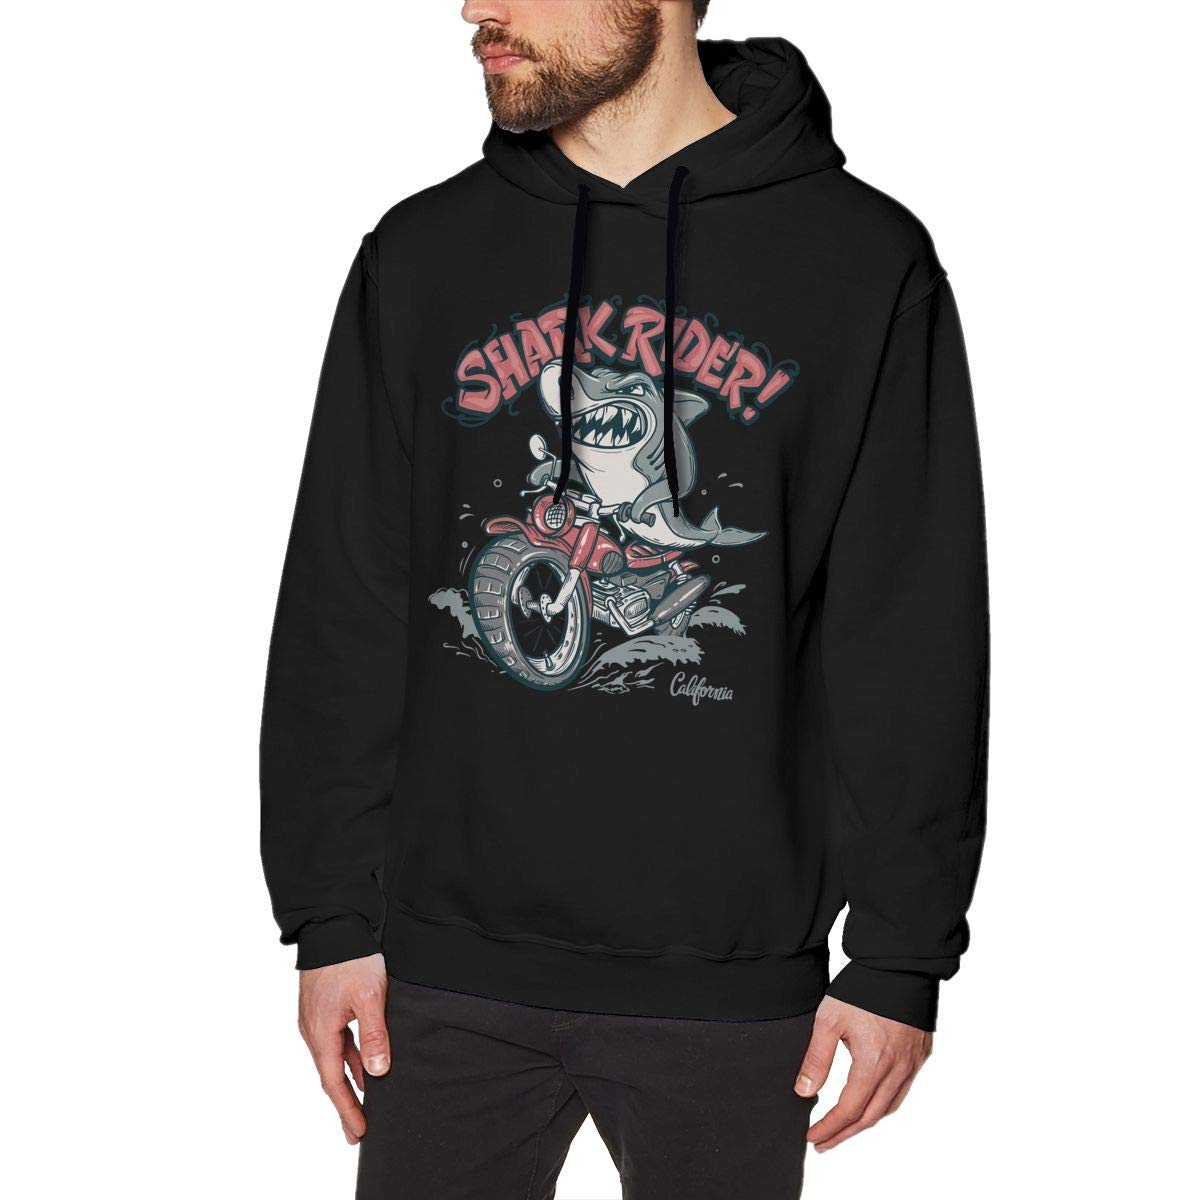 Mens Stylish Solid Color Hooded Long-Sleeve Pullover Drawstring Shark Rider On Motorcycle Hoodie